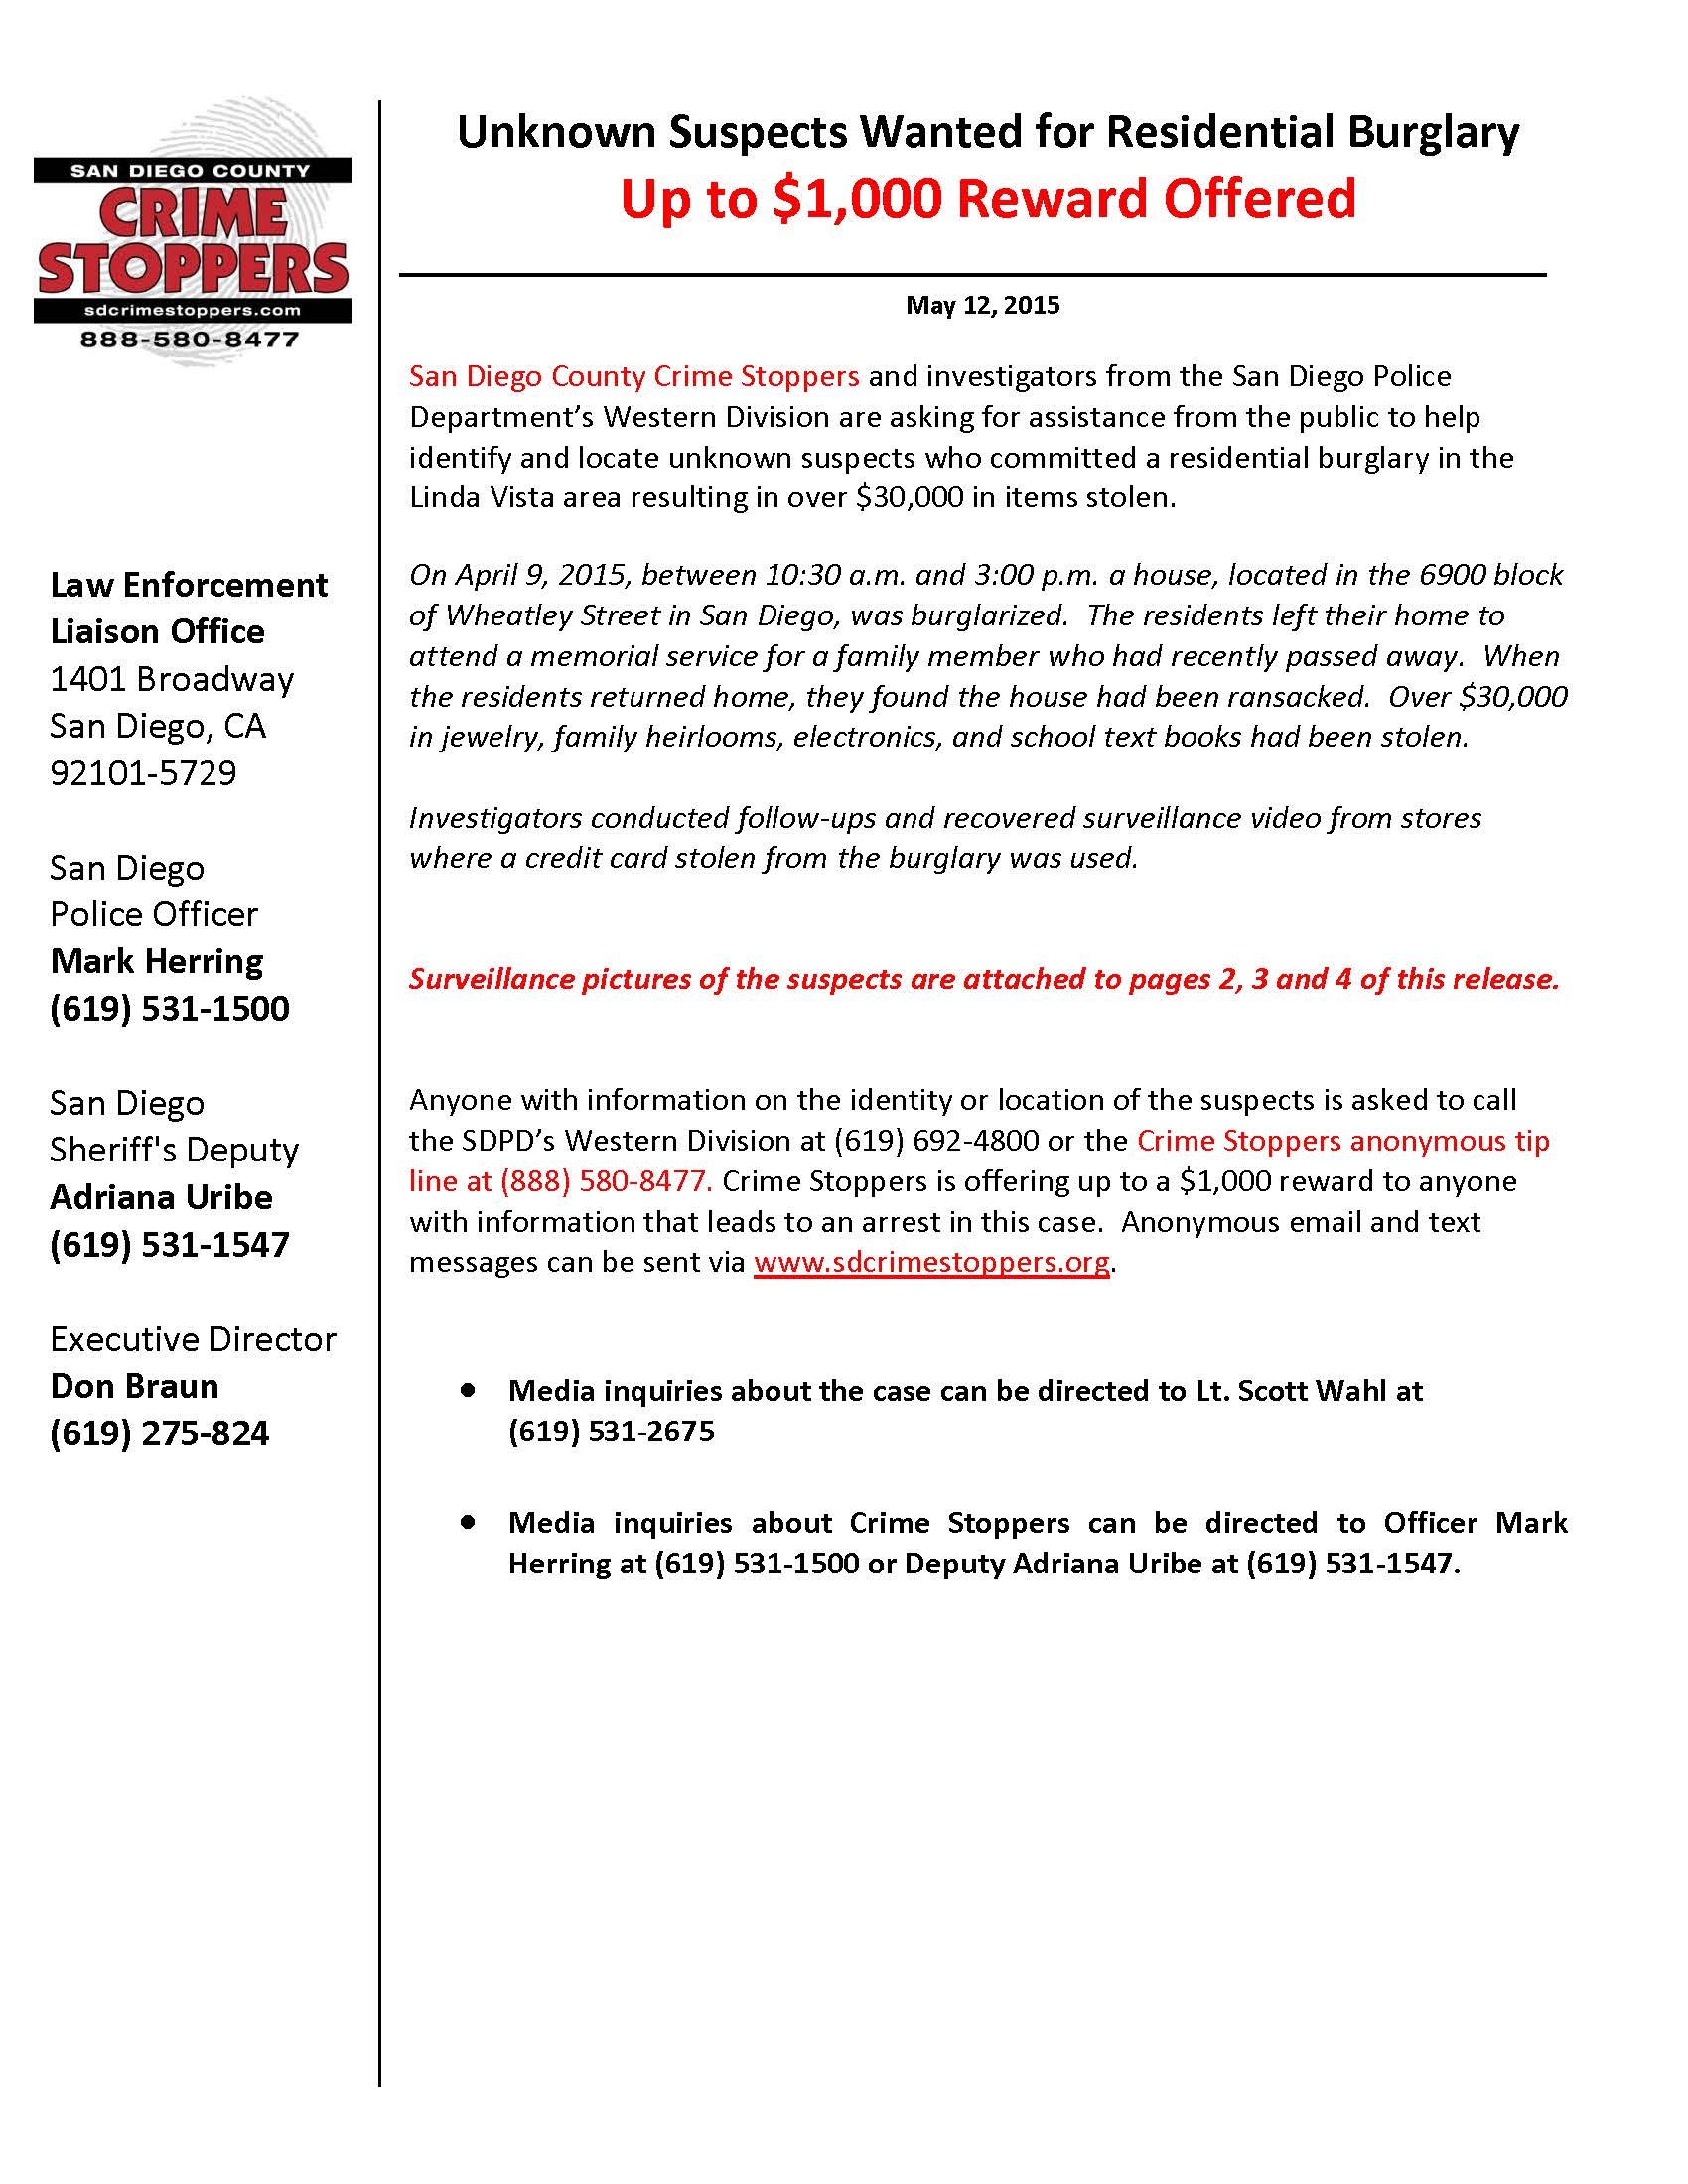 051215 Linda Vista Area Residential Burglary_Page_1